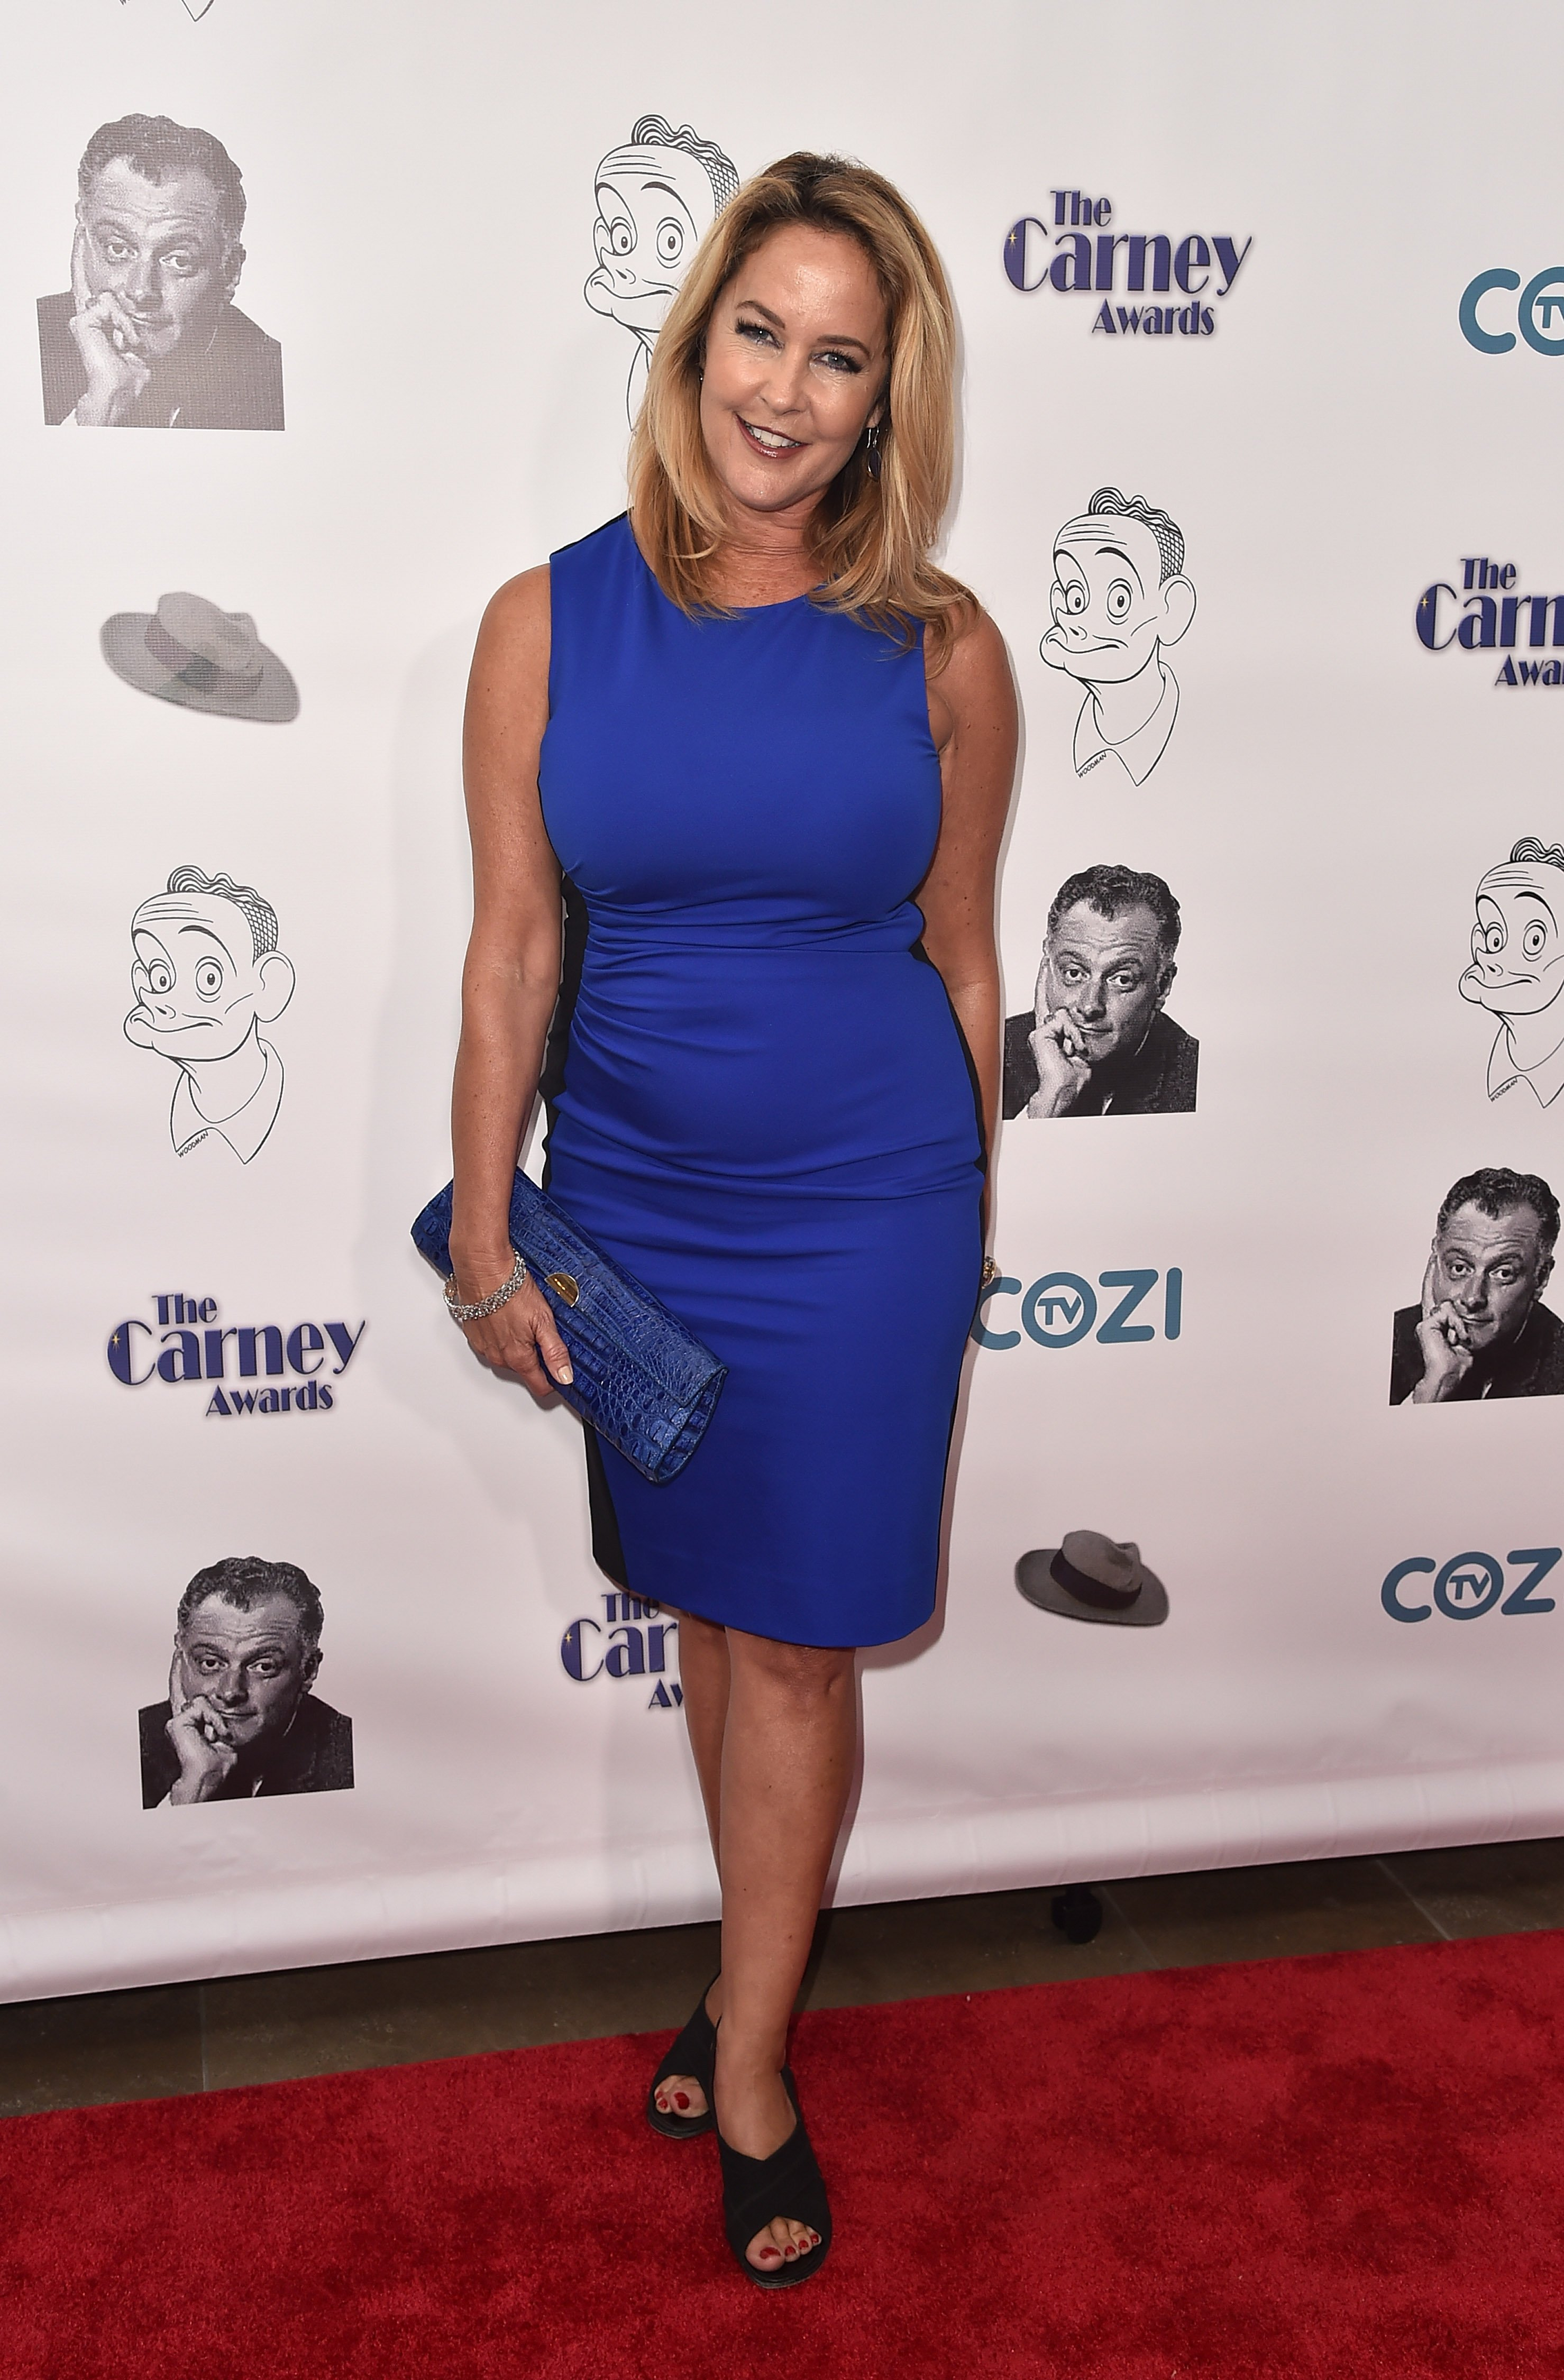 Erin Murphy attends the 3rd Annual Carney Awards at The Broad Stage on October 29, 2017. | Photo: GettyImages